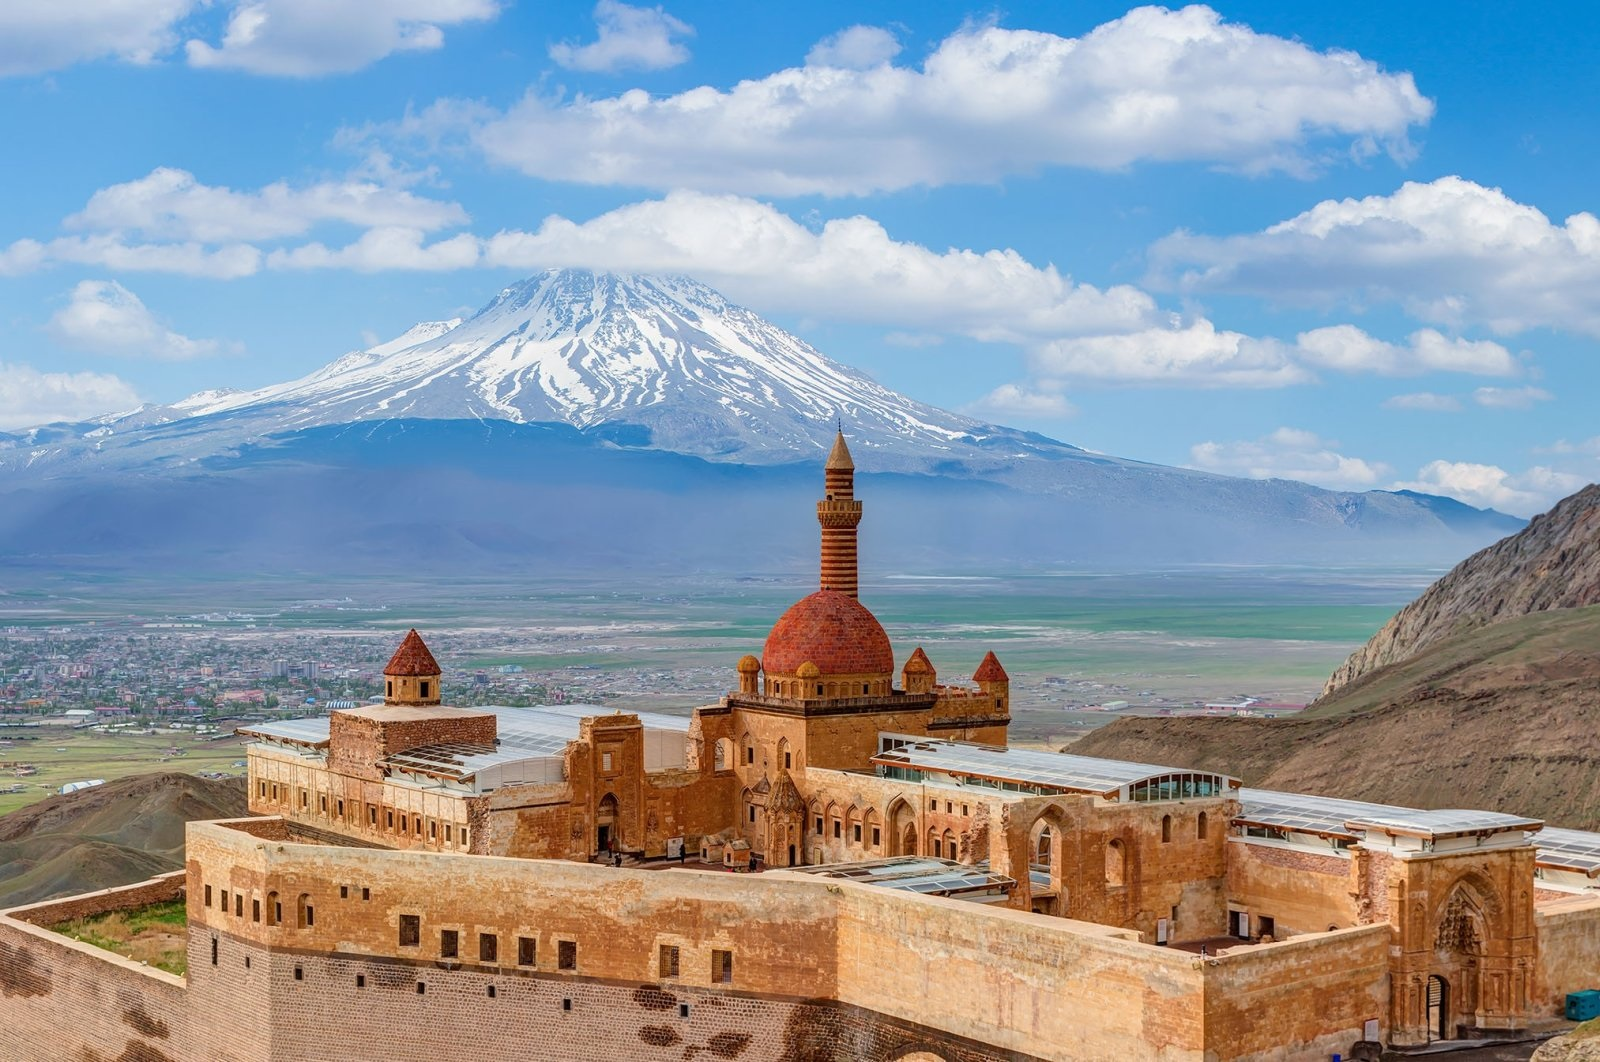 The courtyard of the Ishak Pasha Palace can be seen in Doğubayazıt with Mount Ararat in the background, Ağrı, Turkey. (Shutterstock Photo)